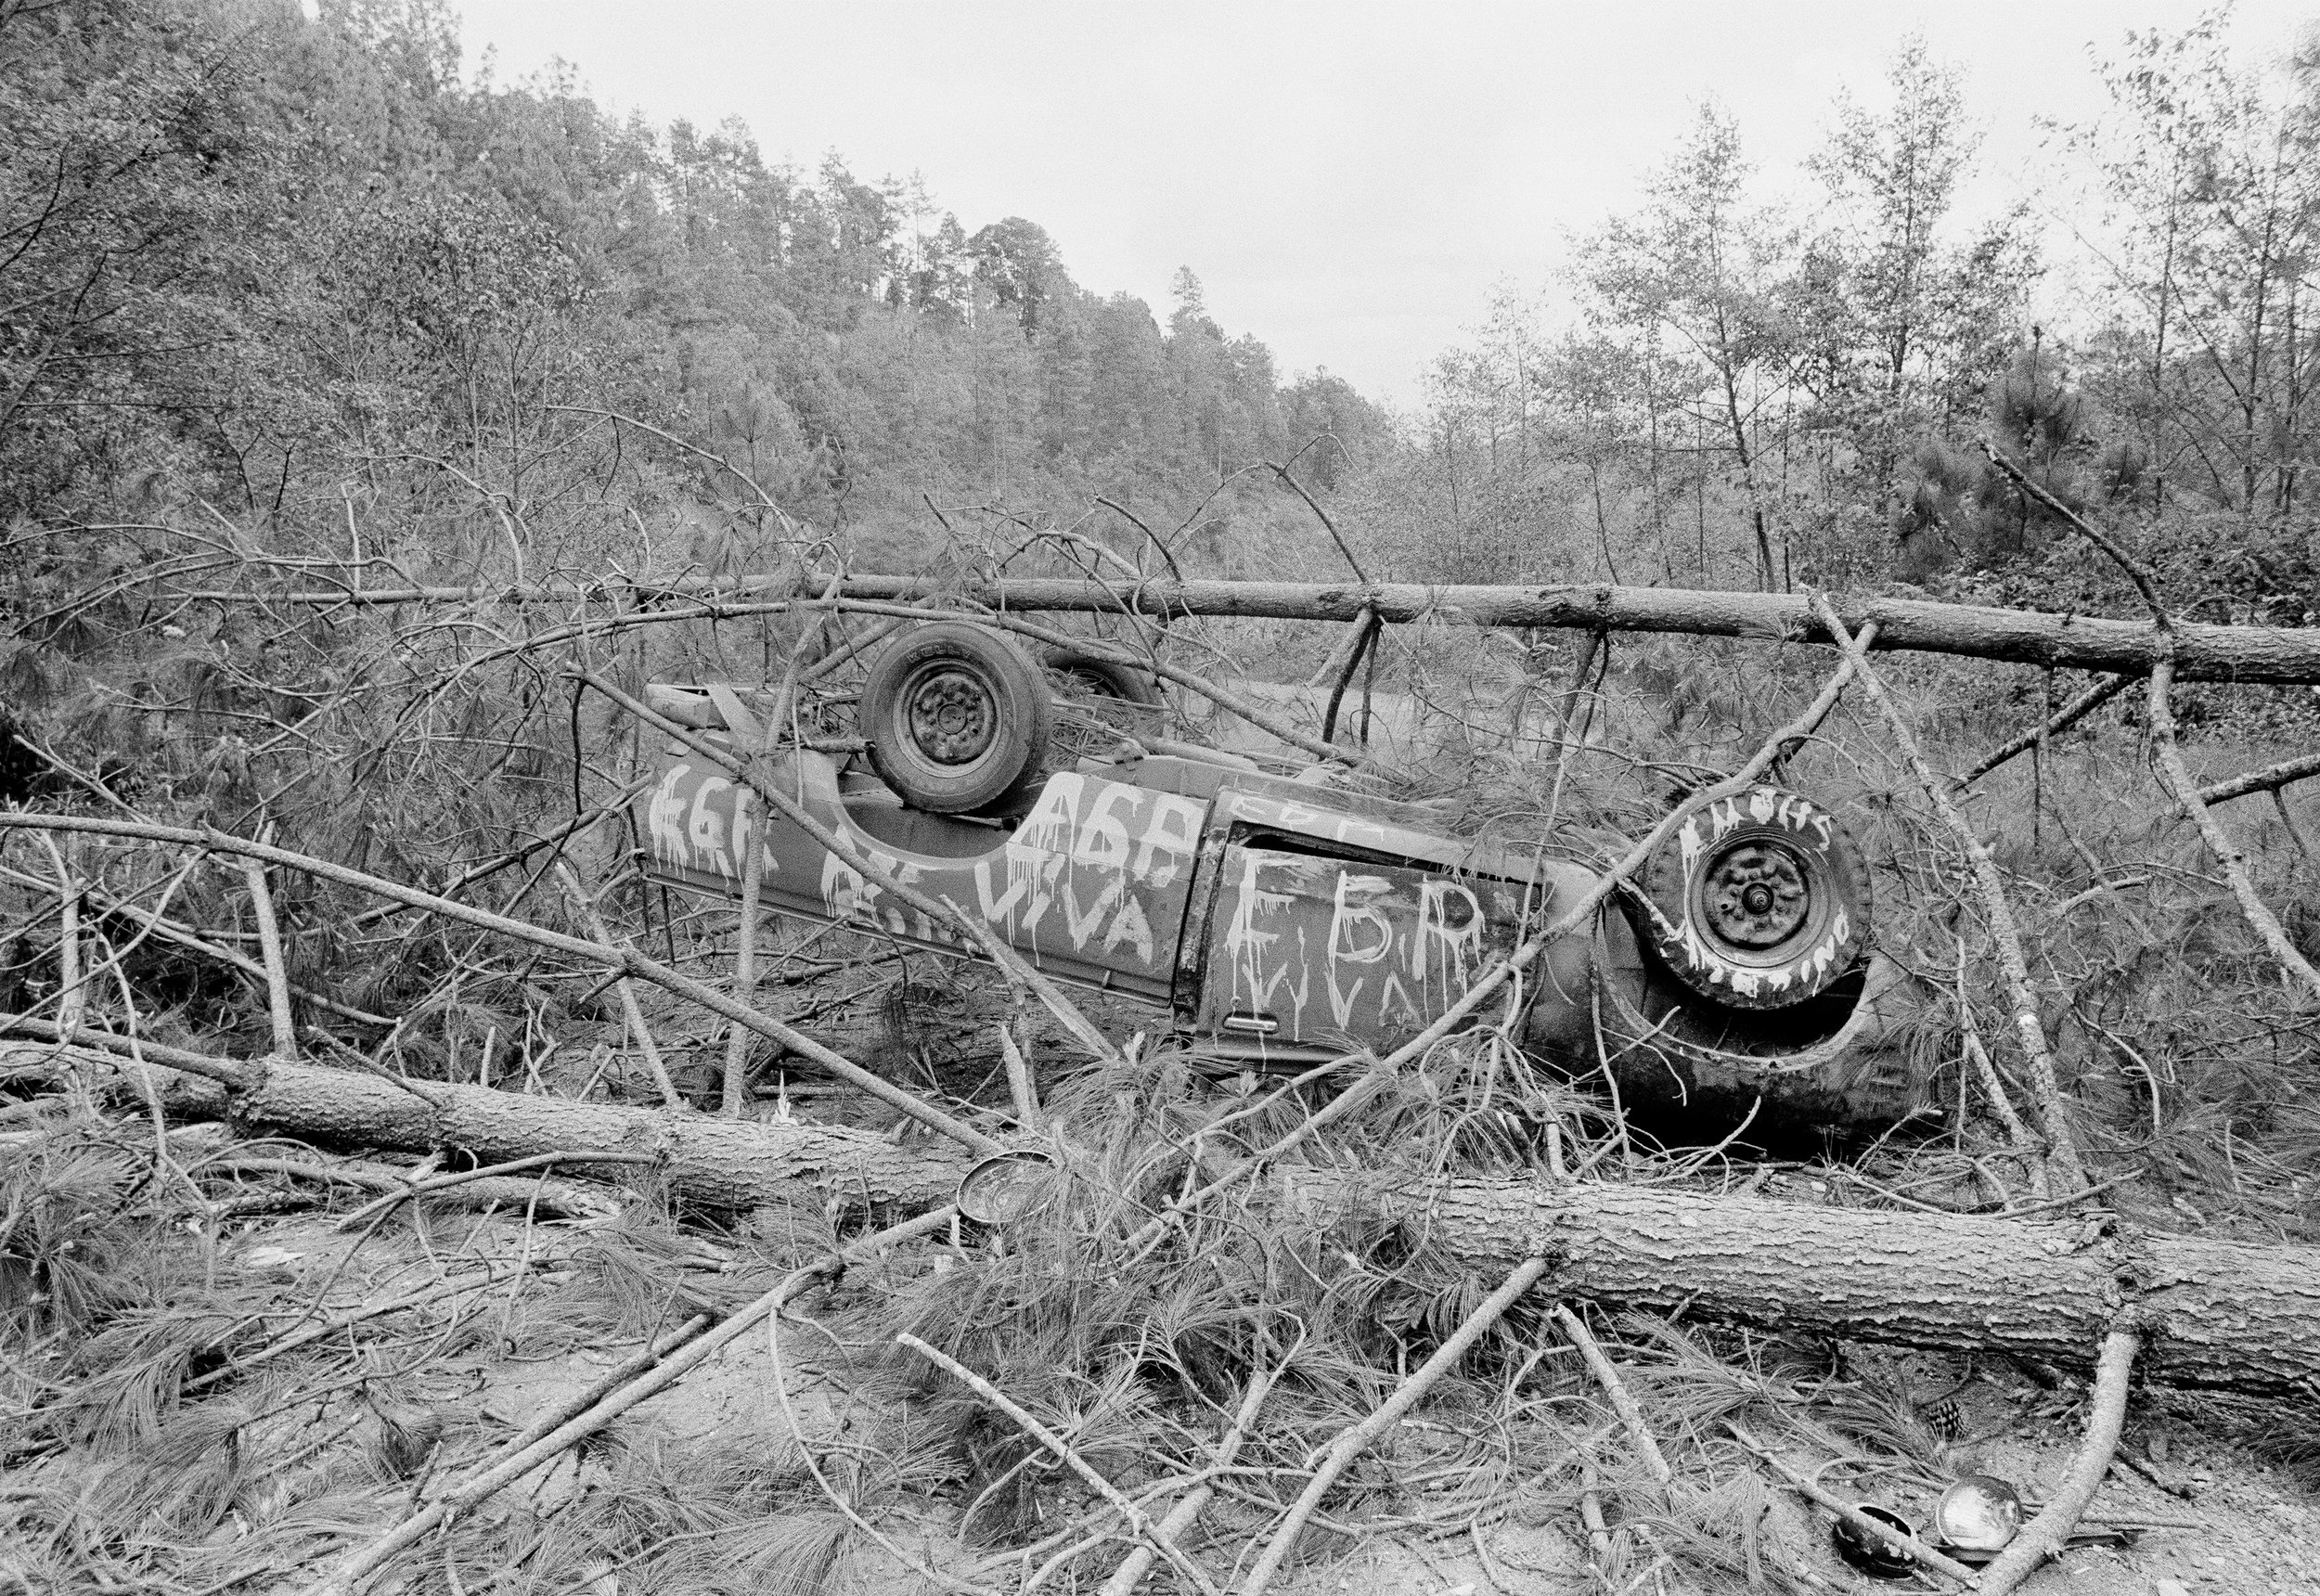 A section of the Pan American Highway was blocked by a destroyed car and felled trees cut by the Guerrilla Army of the Poor, EGP, blocking the road on the day of presidential elections on March 7, 1982.